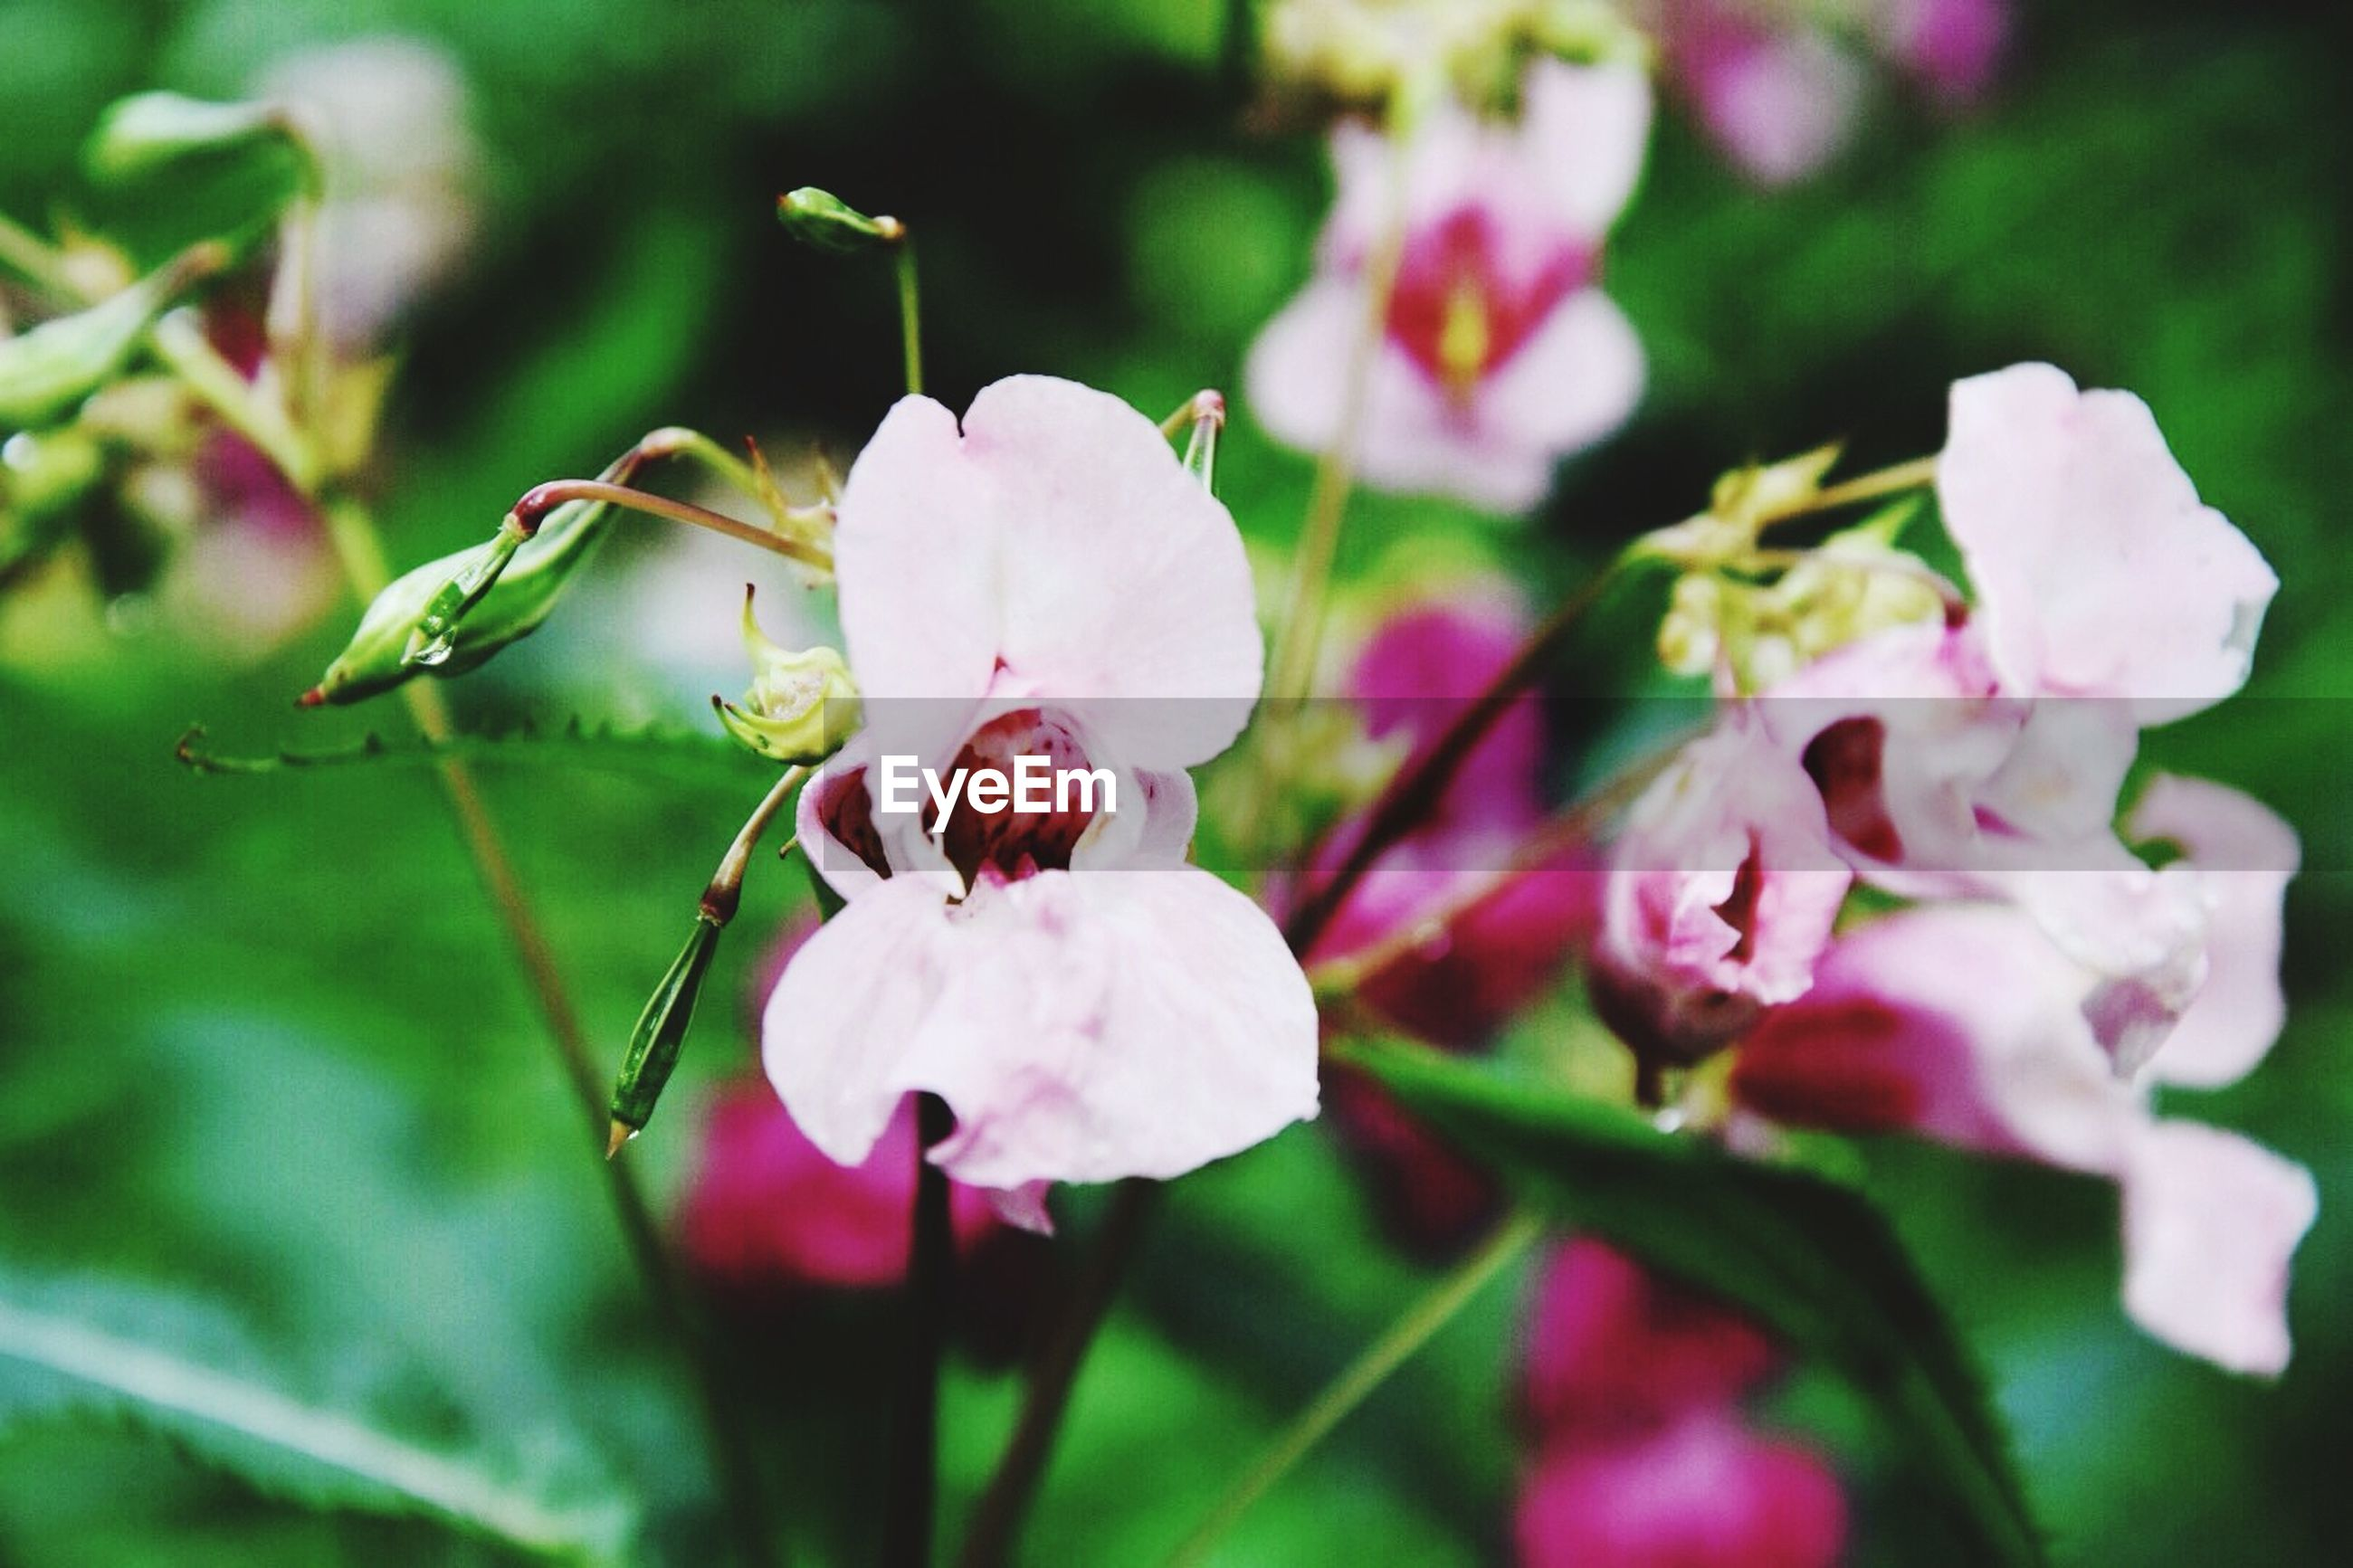 flower, freshness, fragility, growth, petal, beauty in nature, focus on foreground, close-up, flower head, nature, pink color, bud, blooming, plant, in bloom, stem, blossom, springtime, selective focus, twig